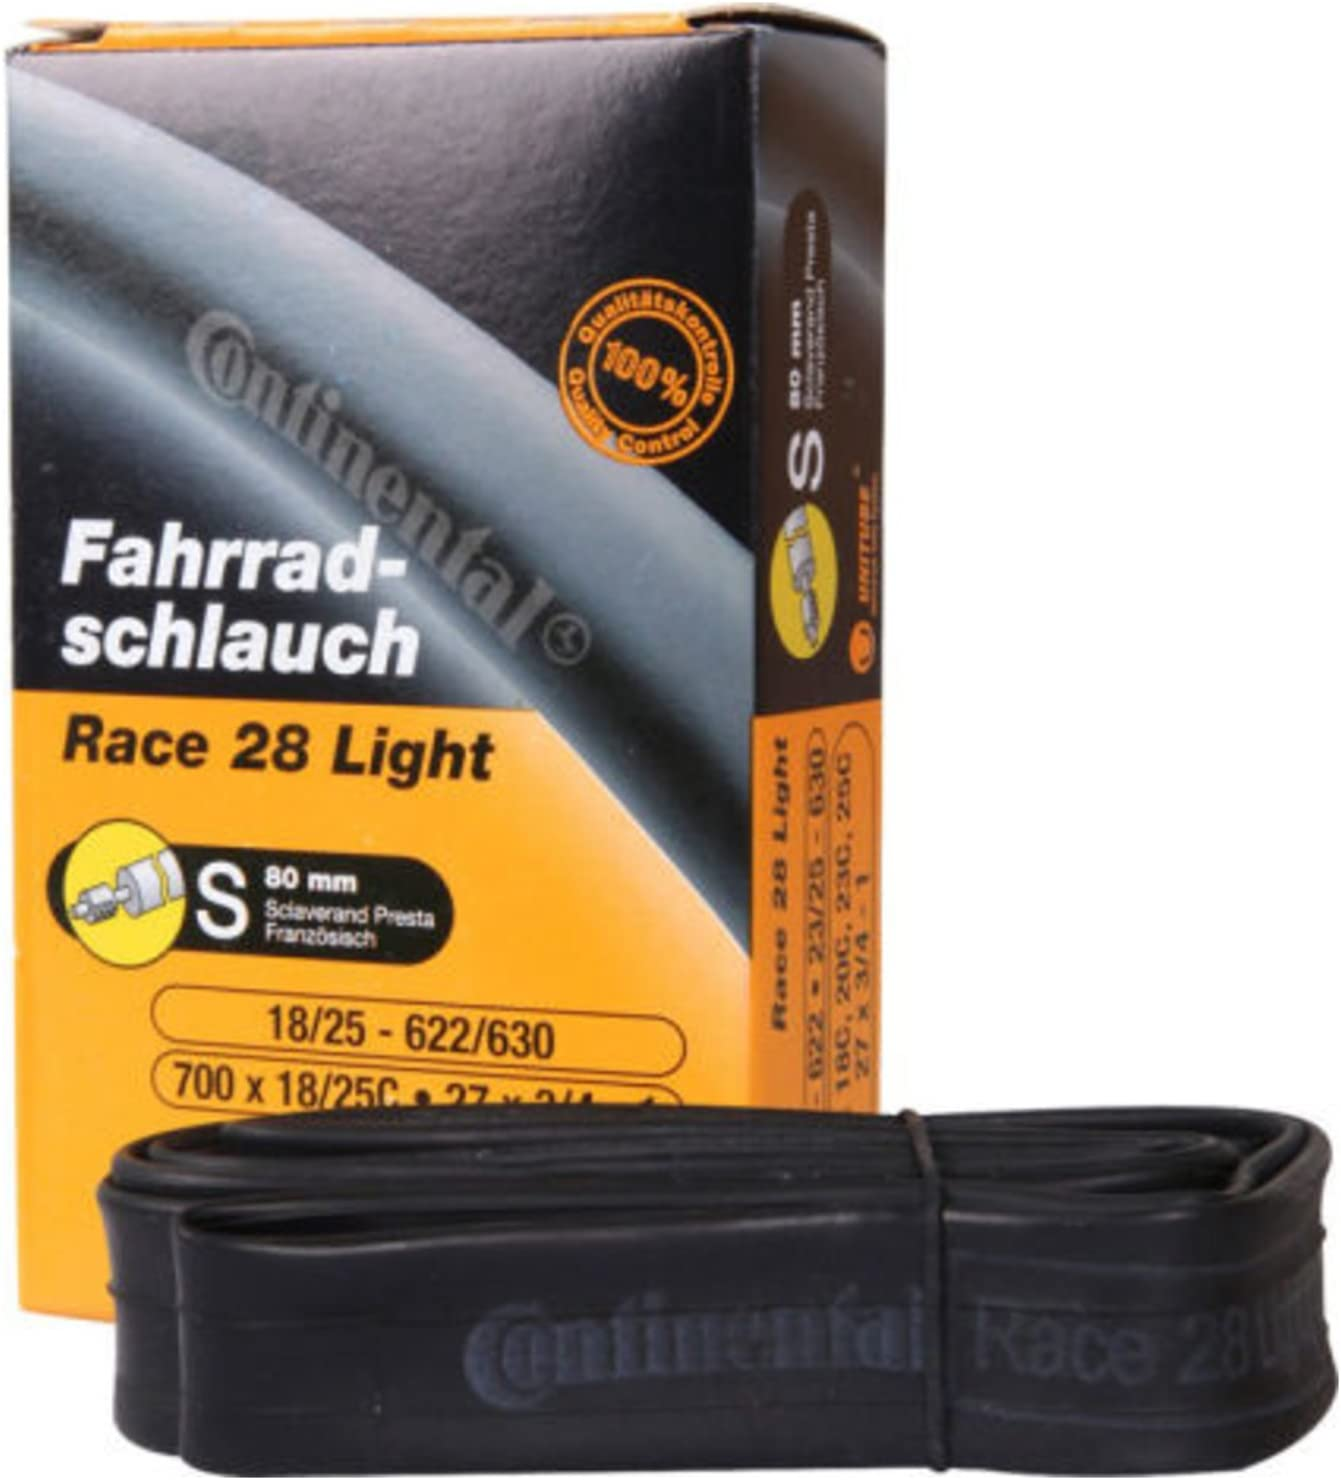 10 Continental Race Light 28 Tubes 700x18-25 Presta 80mm Valve Bike Tubes